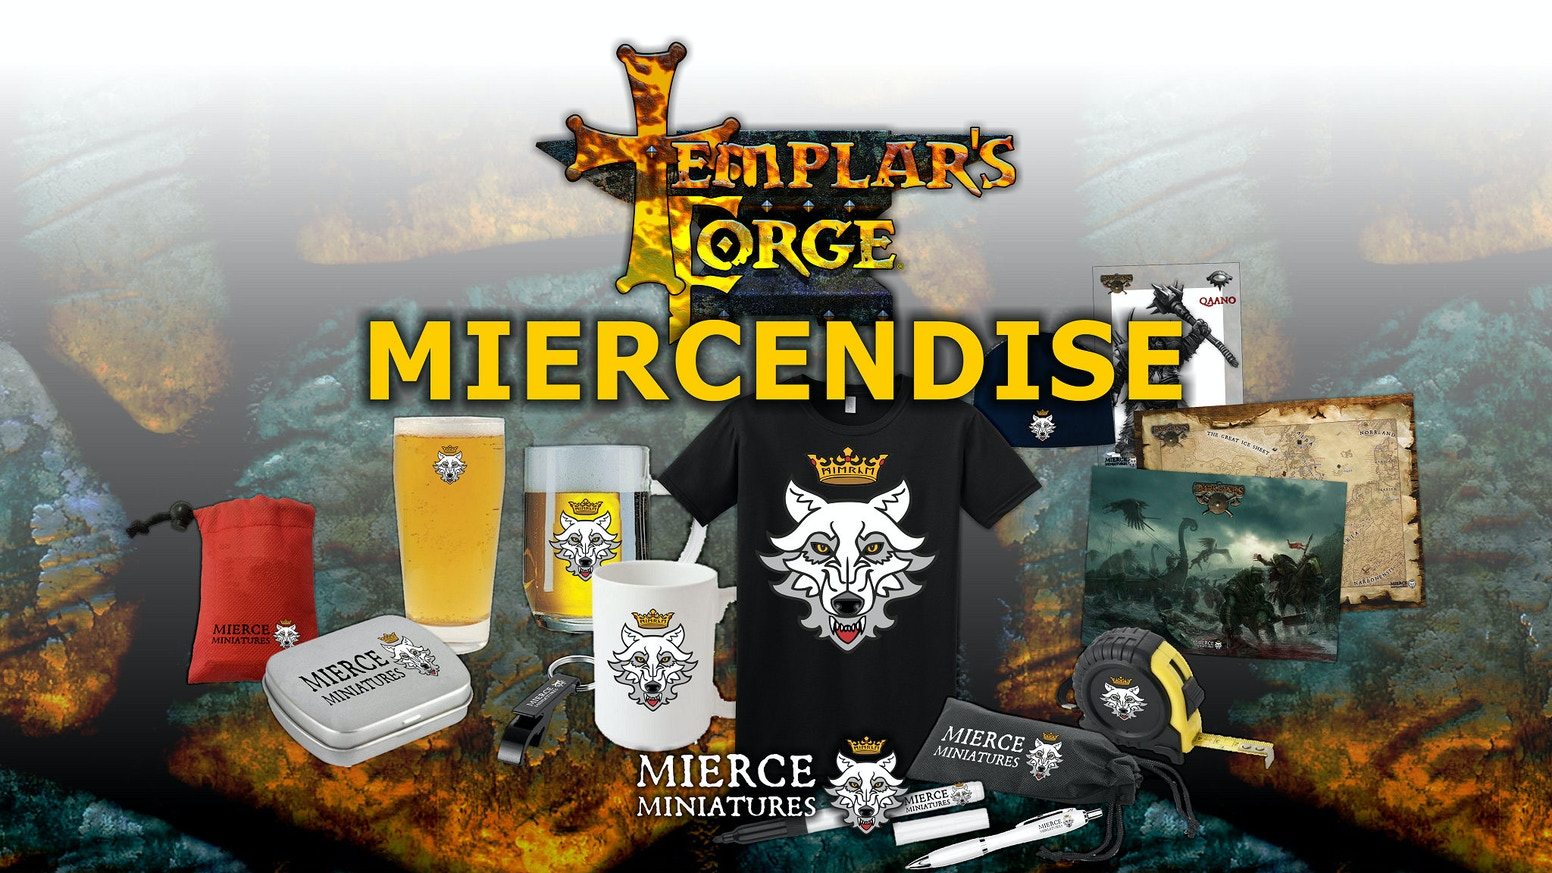 Templar's Forge provides the discerning gamer with a myriad of gaming aids, hobby items and miercendise to spread the Darklands word!